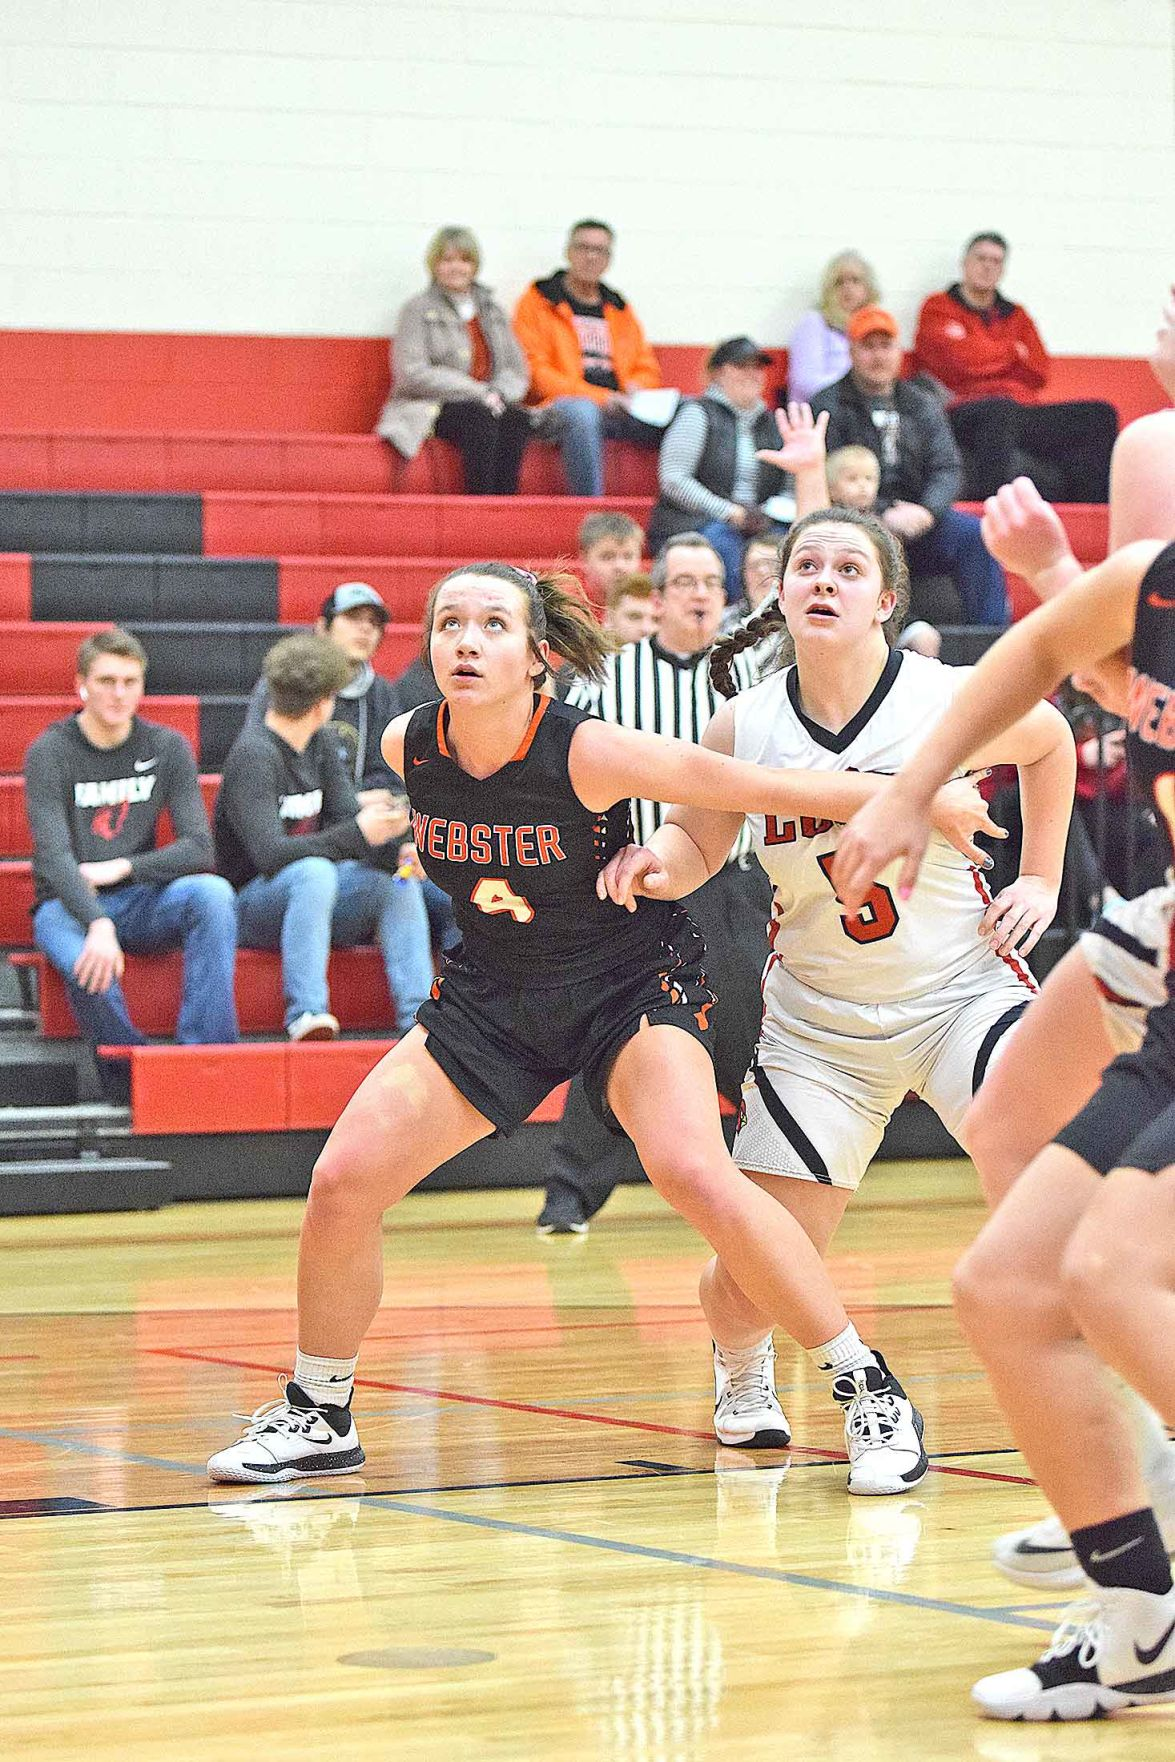 GBB-2-Hannah-Janssen-boxing-out-McKenna-Delany-WEB.jpg